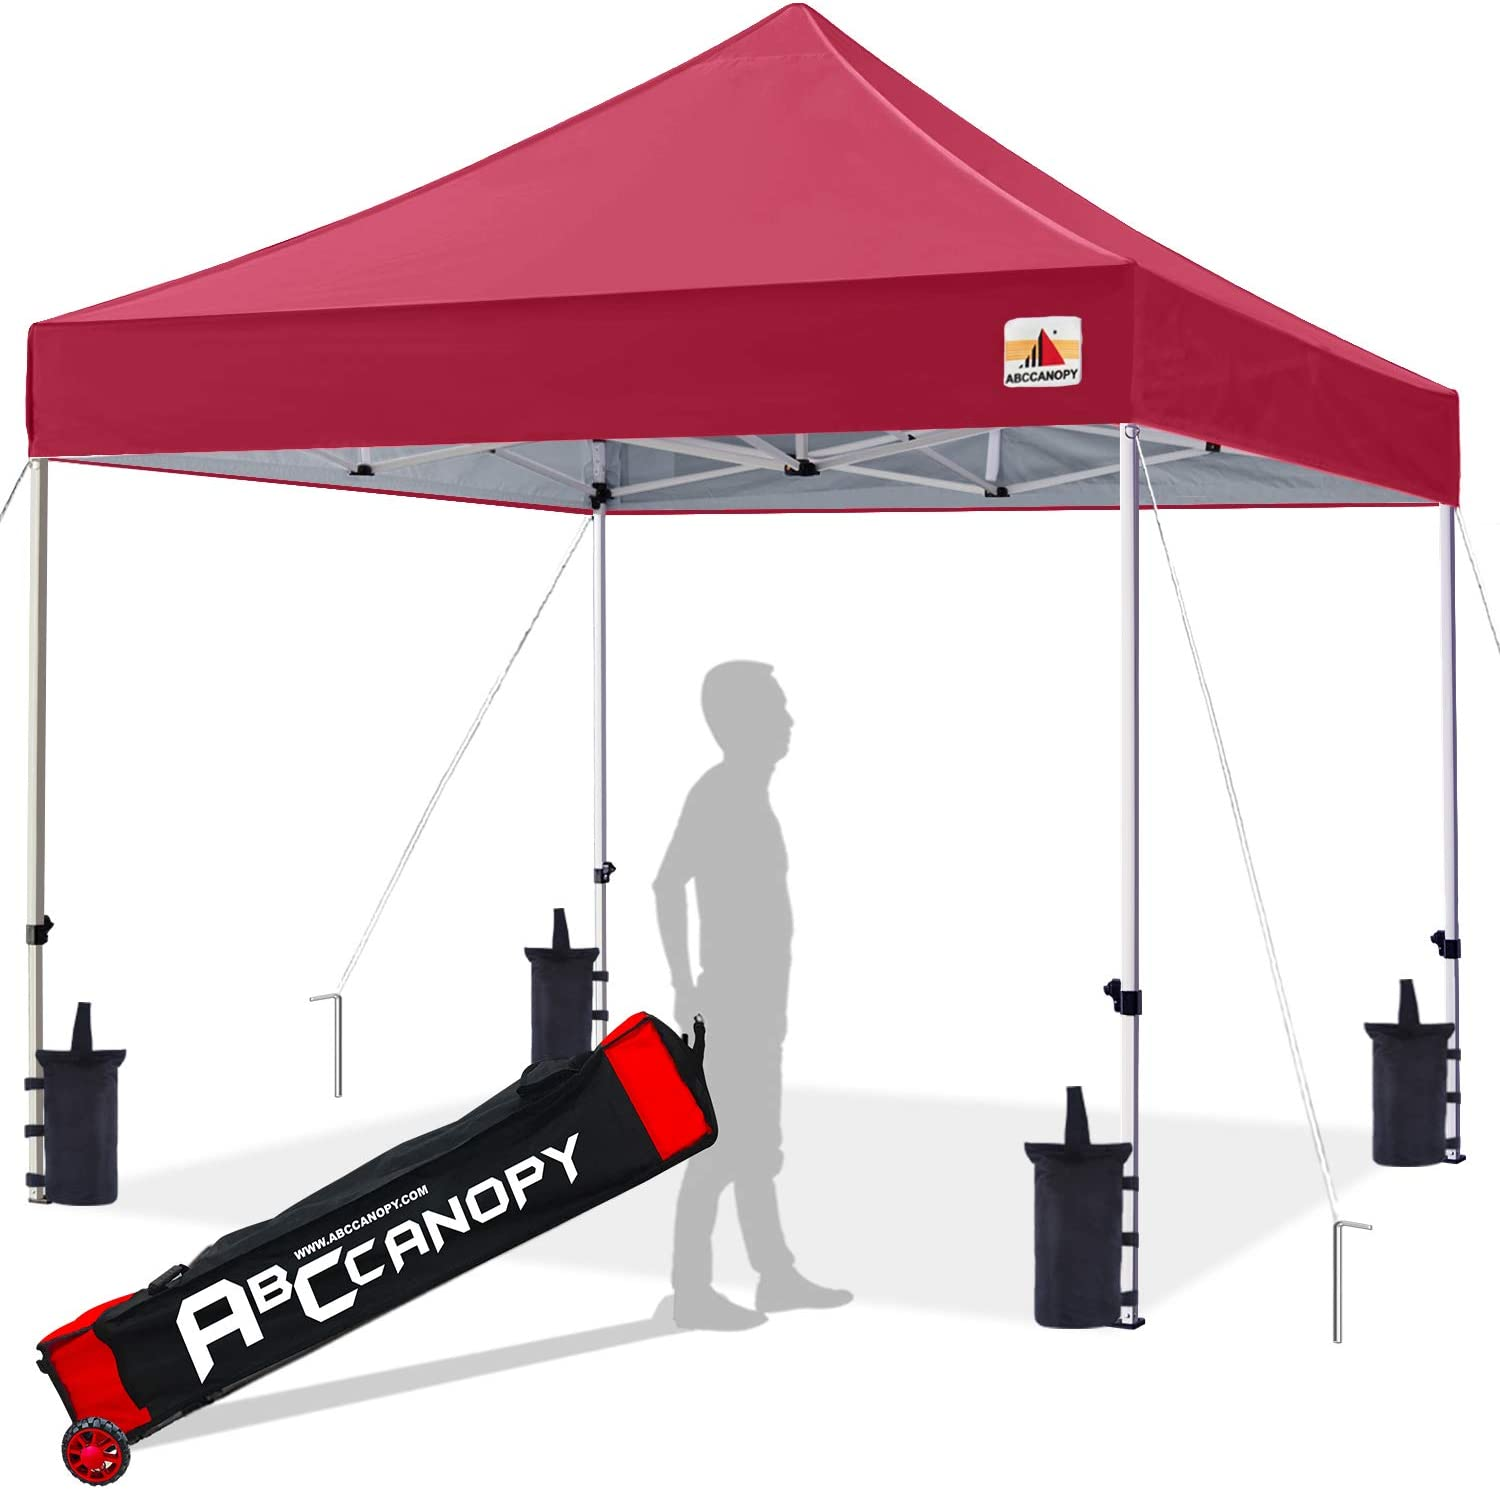 ABCCANOPY 10×10 Canopy Tent Pop up Canopy Outdoor Canopy Commercial Instant Shelter with Wheeled Carry Bag, Bonus 4 Canopy Sand Bags, Burgundy